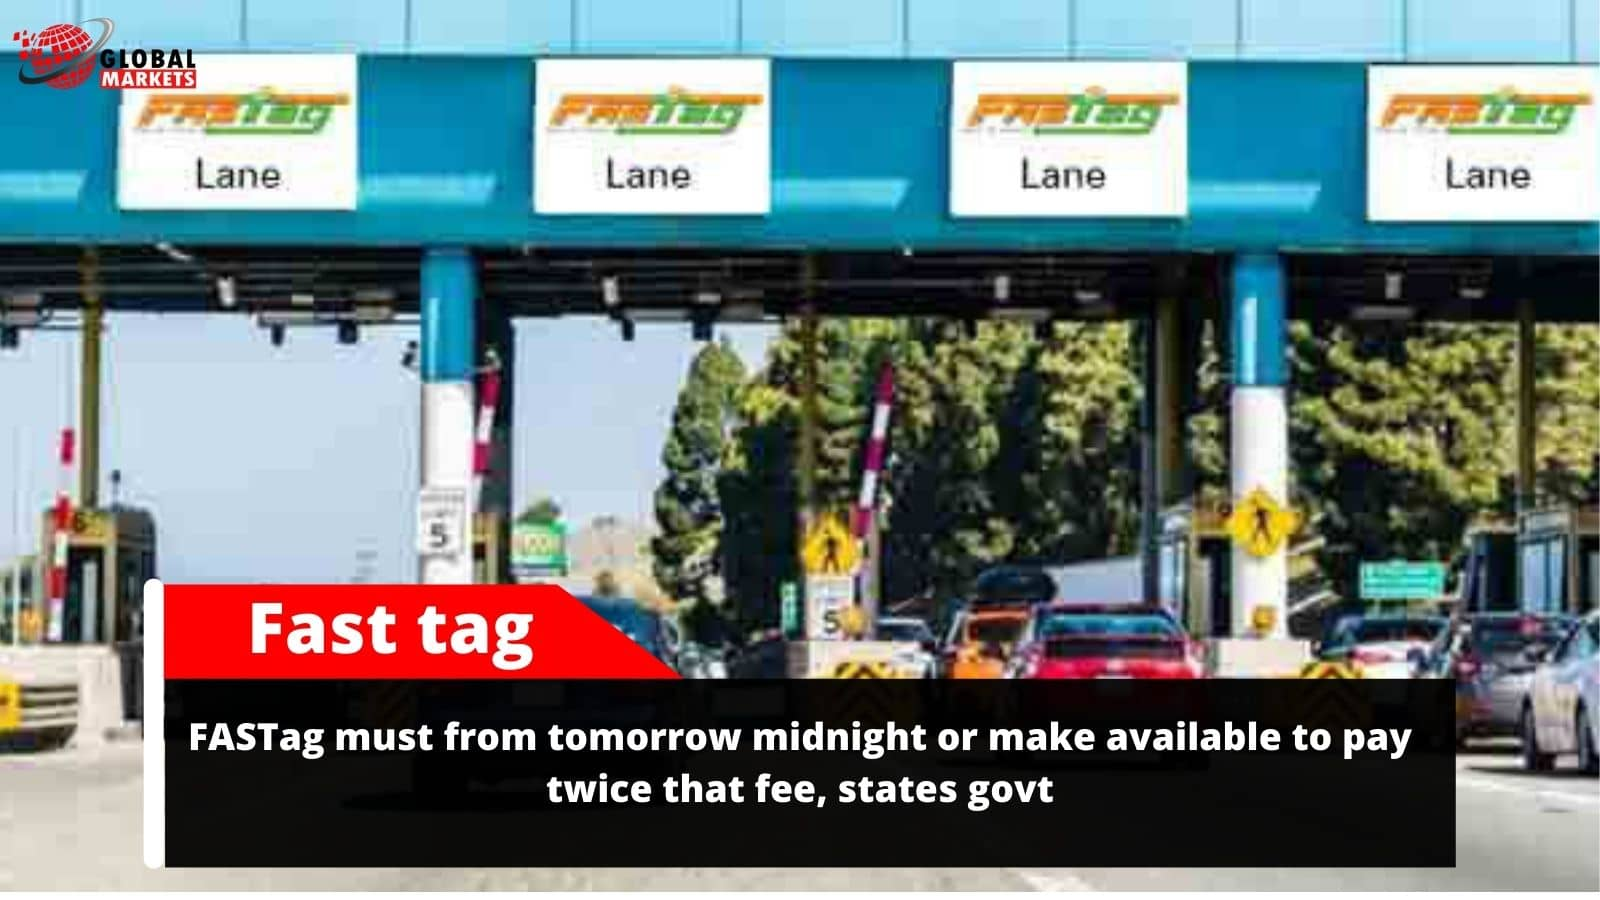 FASTag must from tomorrow midnight or make available to pay twice that fee, states govt